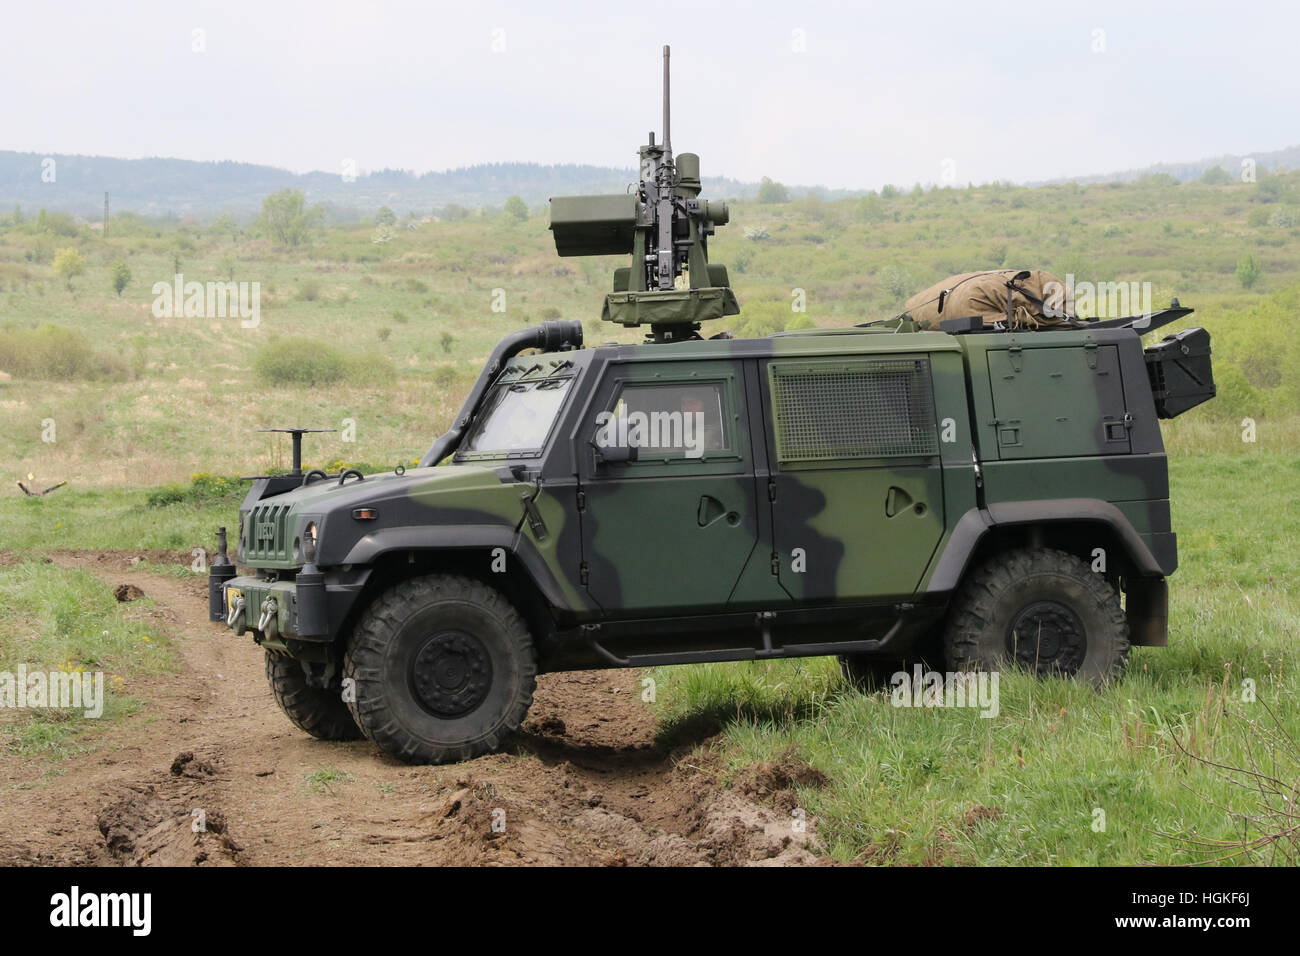 Presentation of the Iveco LMV 2 armored vehicle